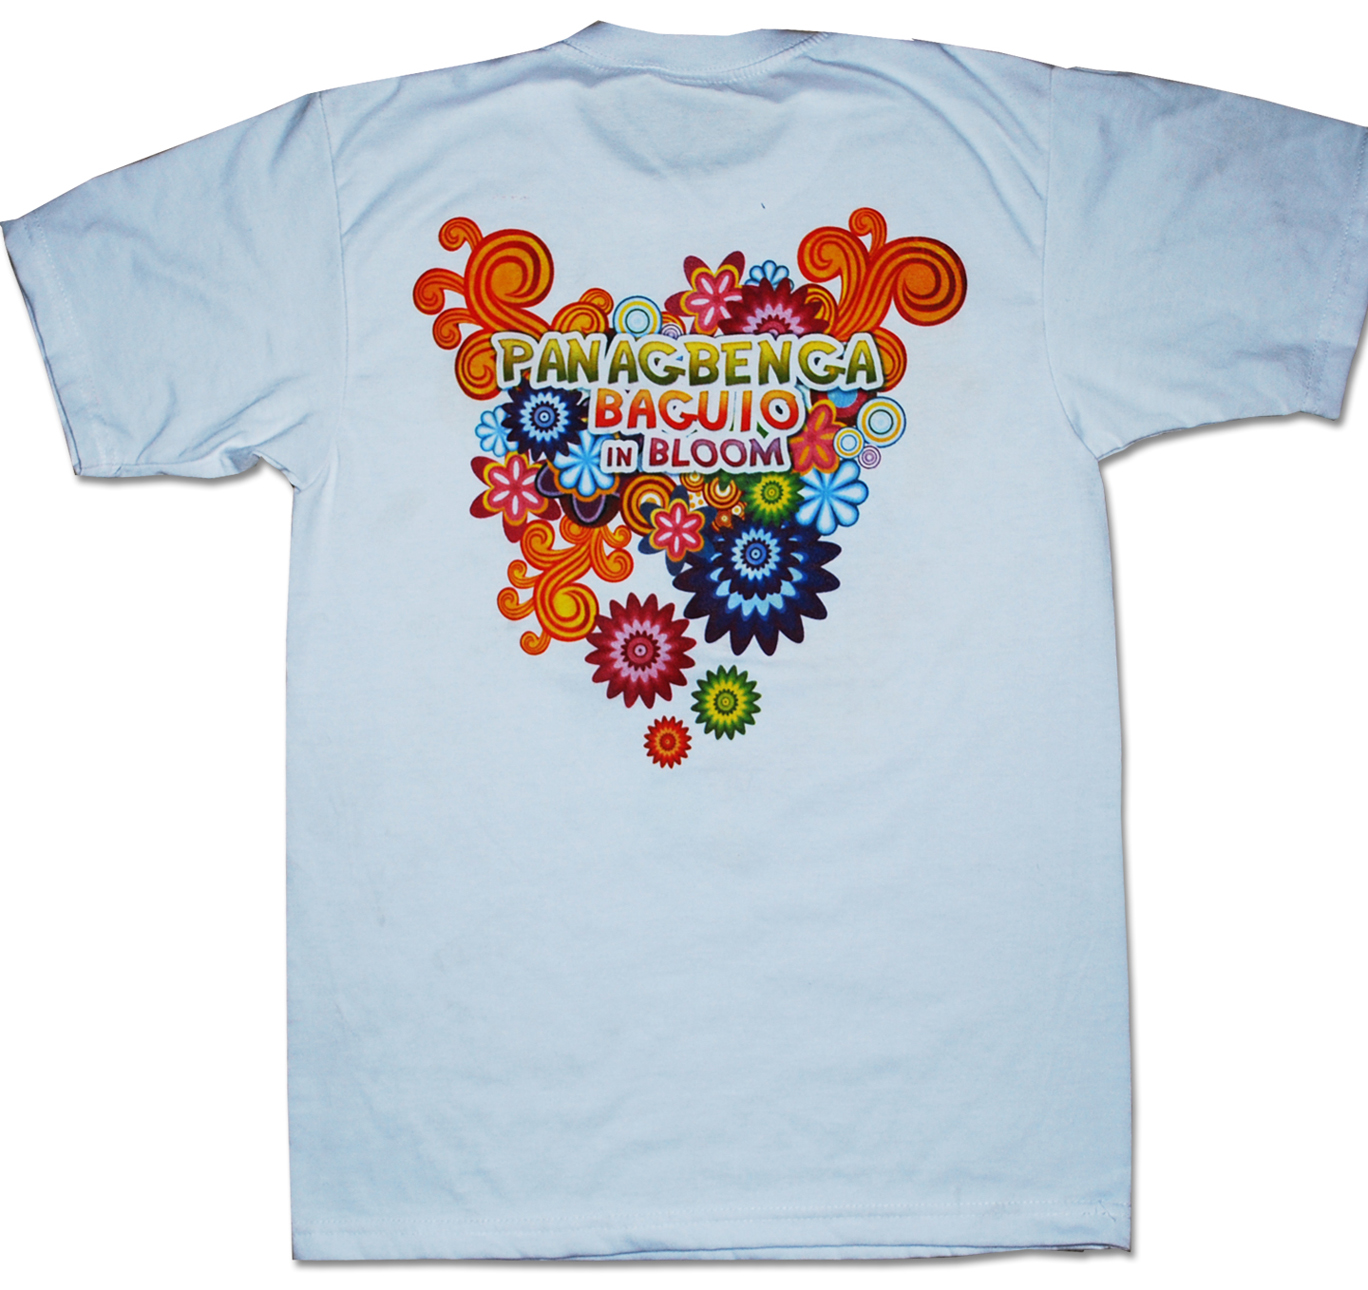 T Shirt Philippines Design Bcd Tofu House